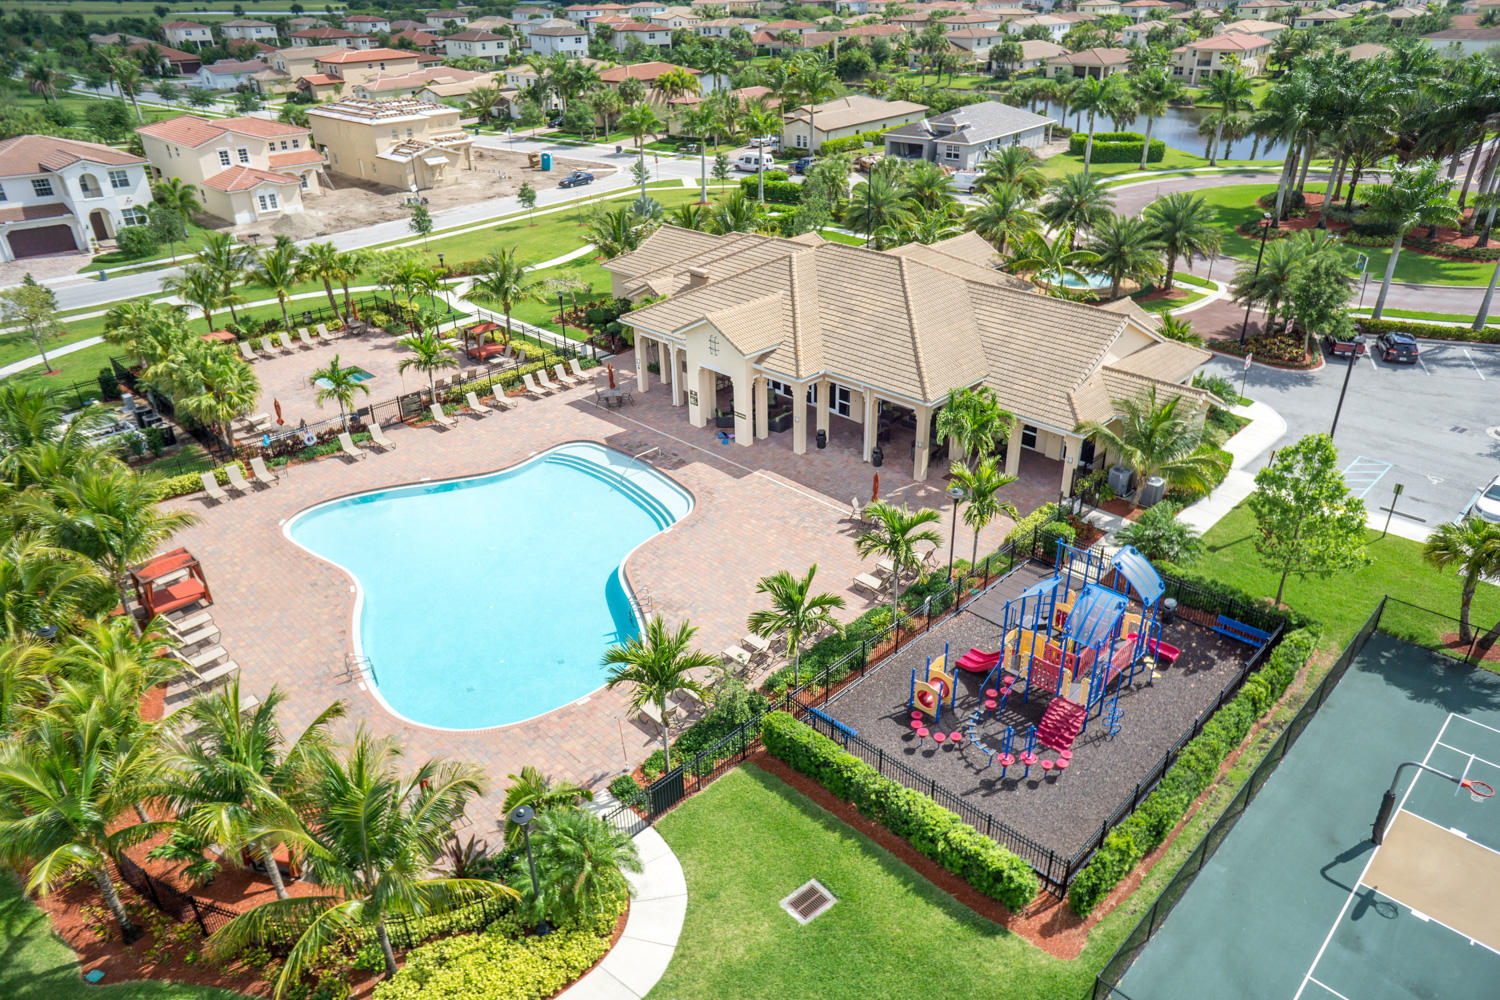 Rialto Clubhouse TheShattowGroup